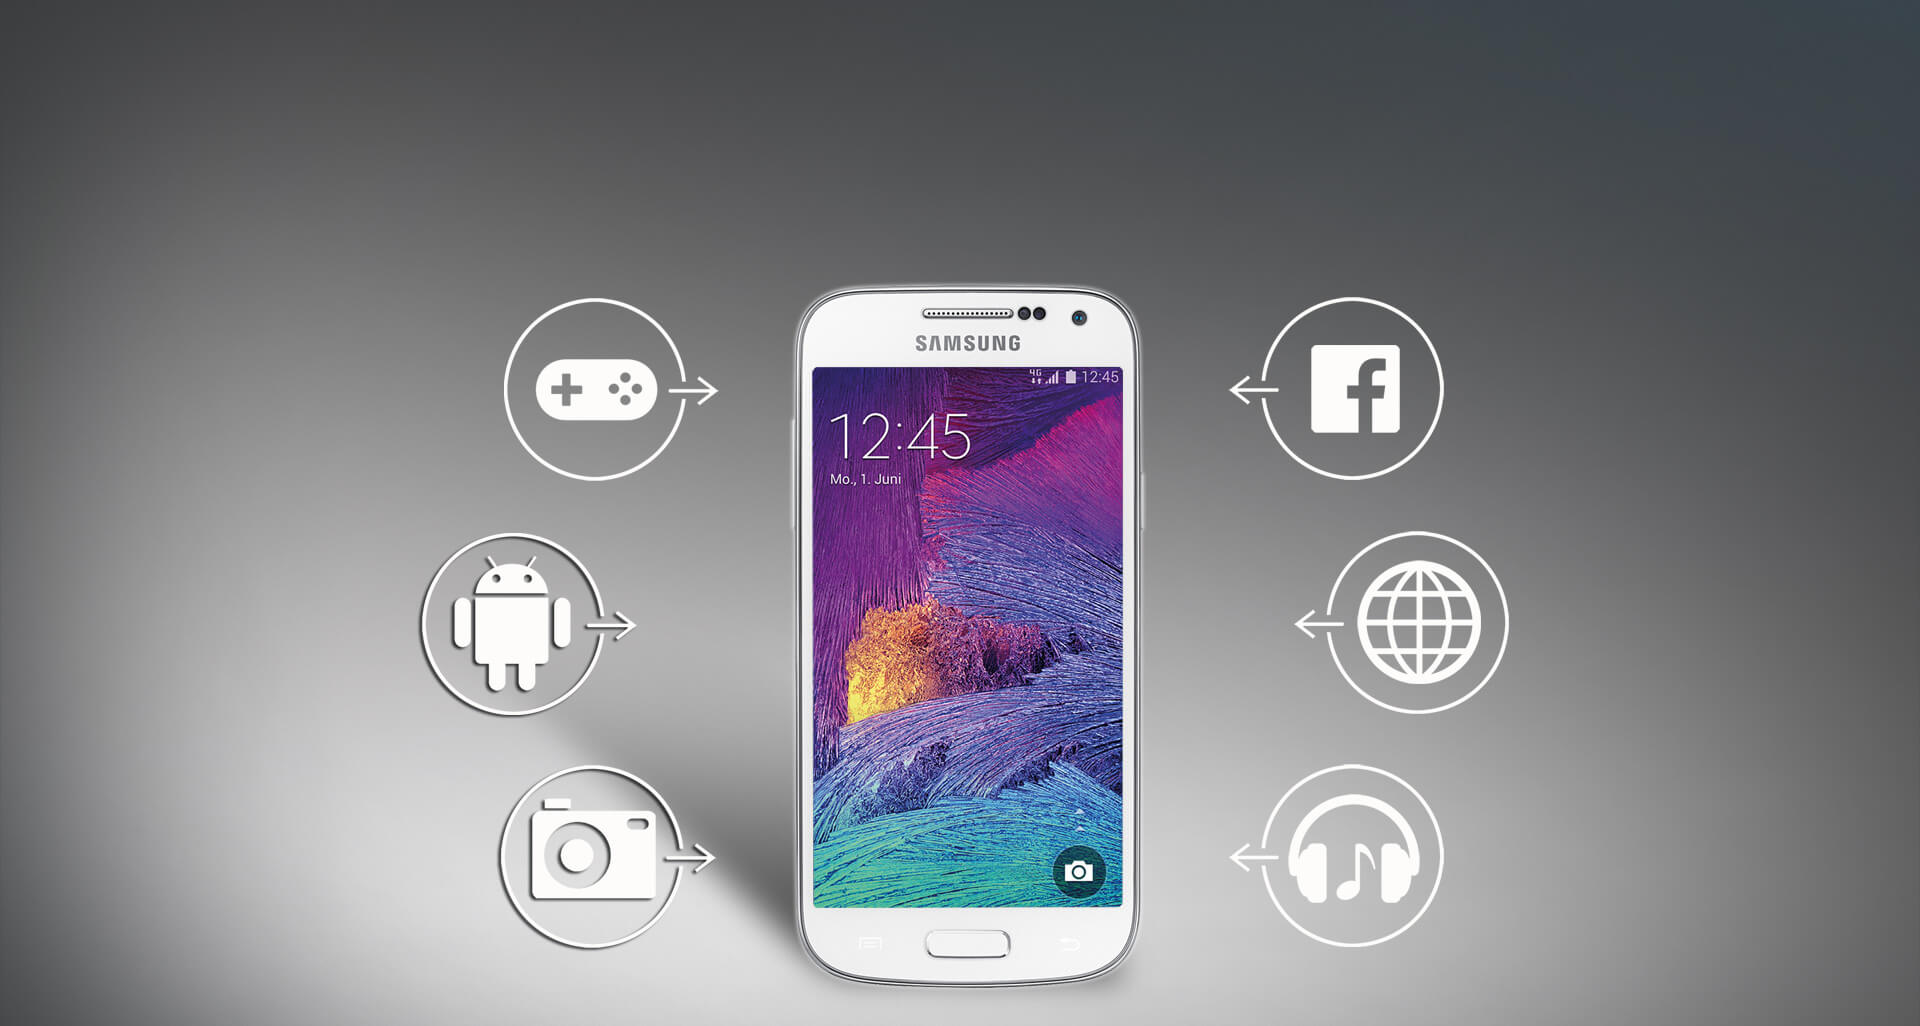 Galaxy S4 mini plus